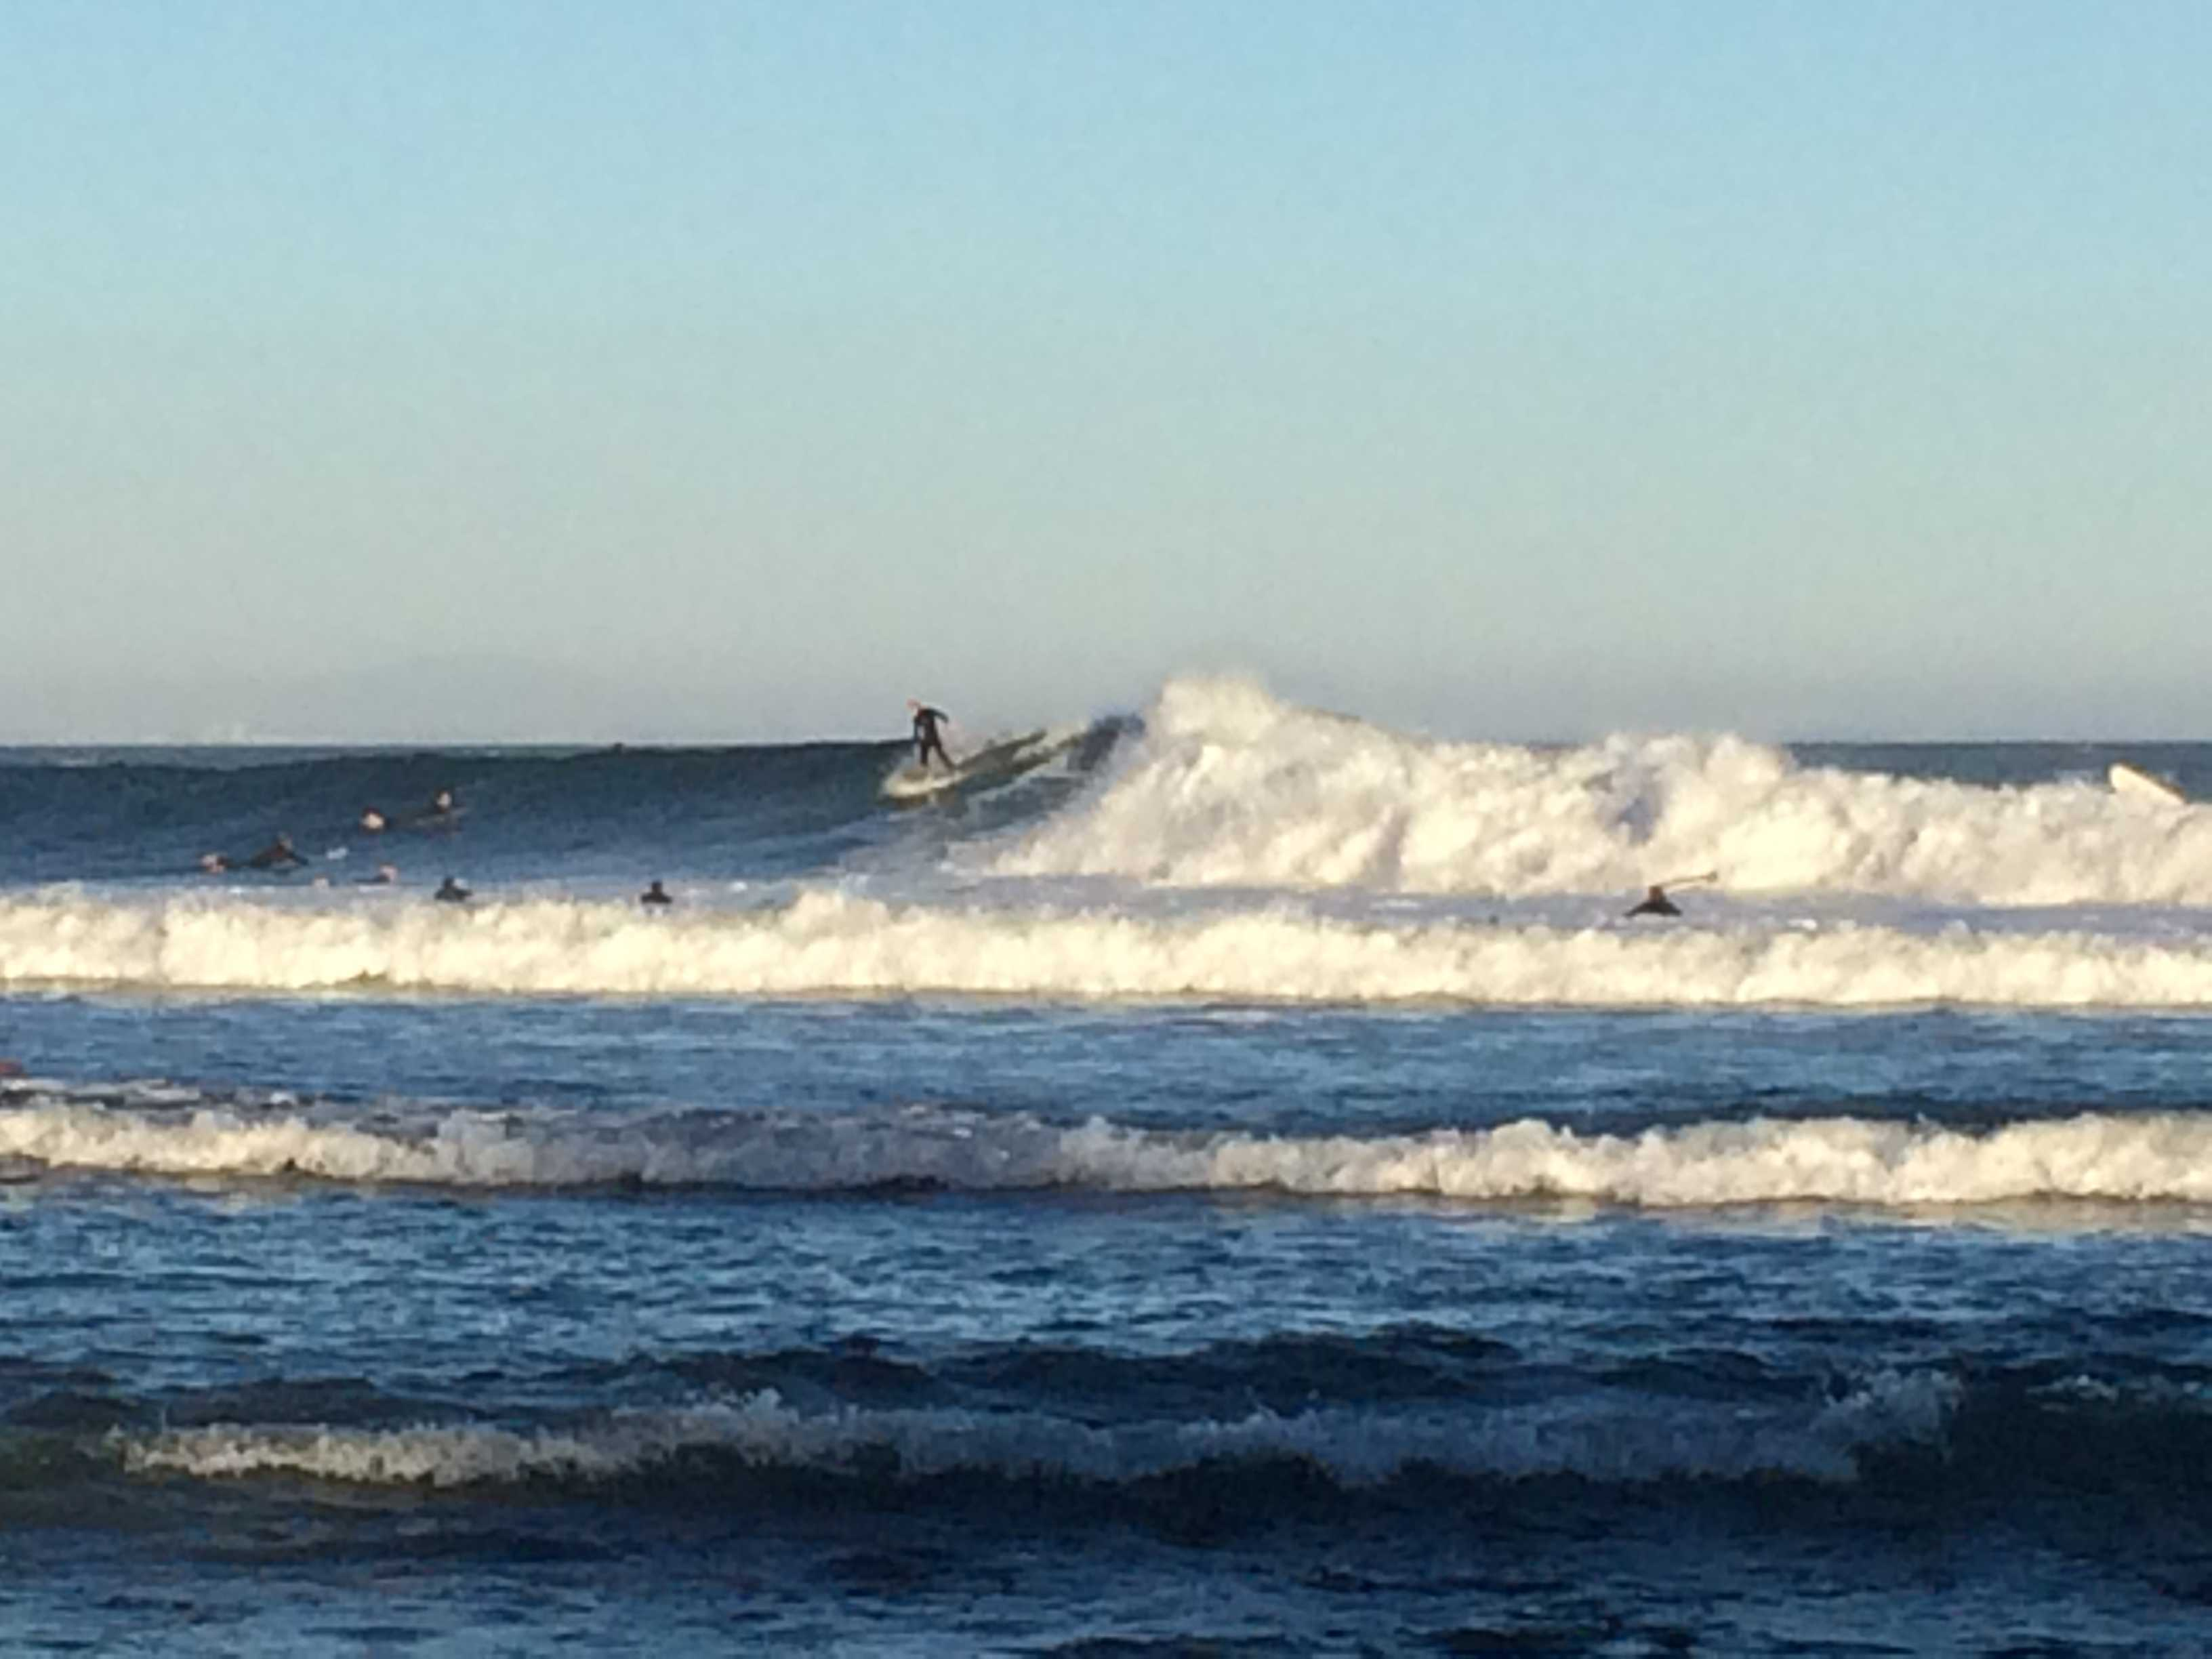 Members of the surf community flocked to Malibu for the epic surf.